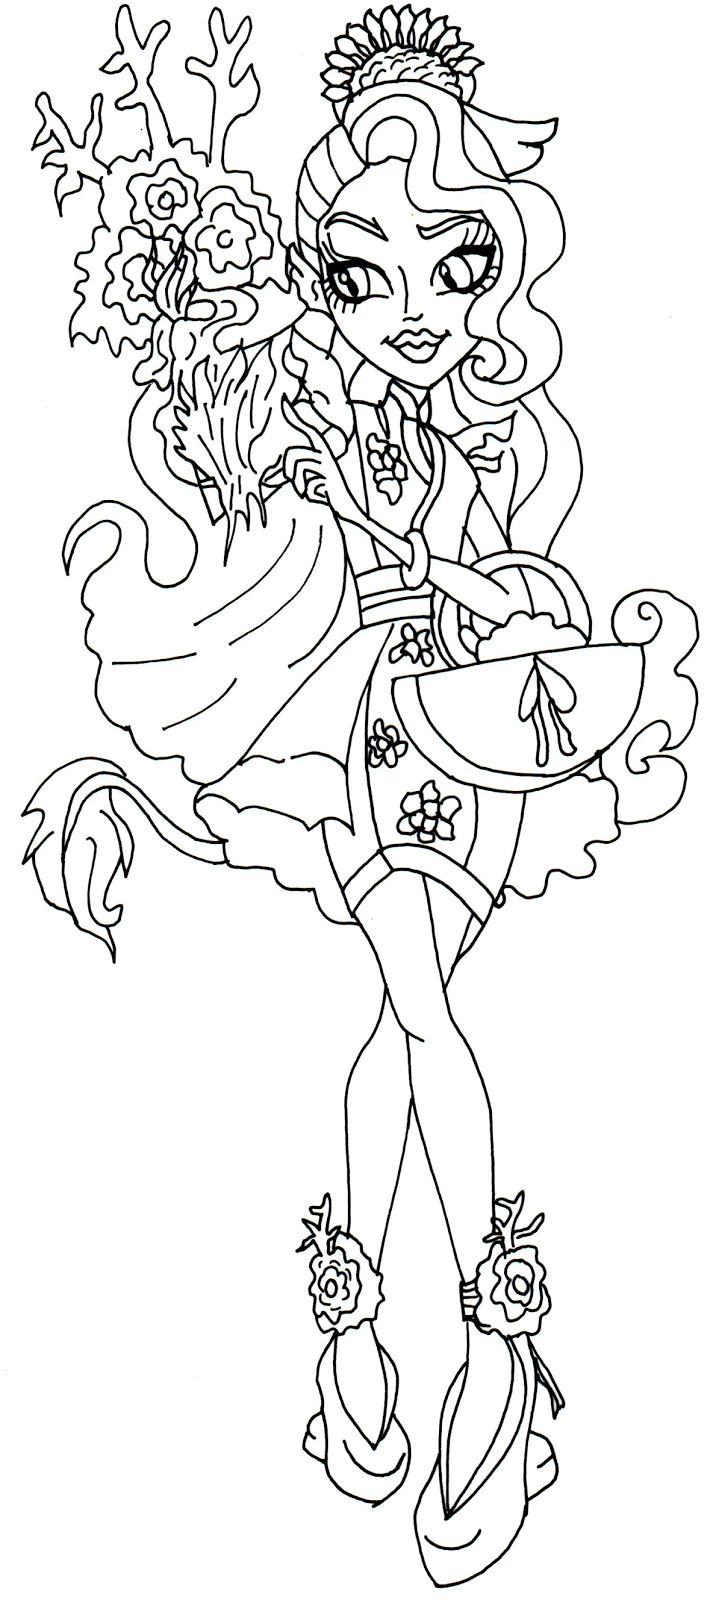 freaky fusion coloring pages - photo#17